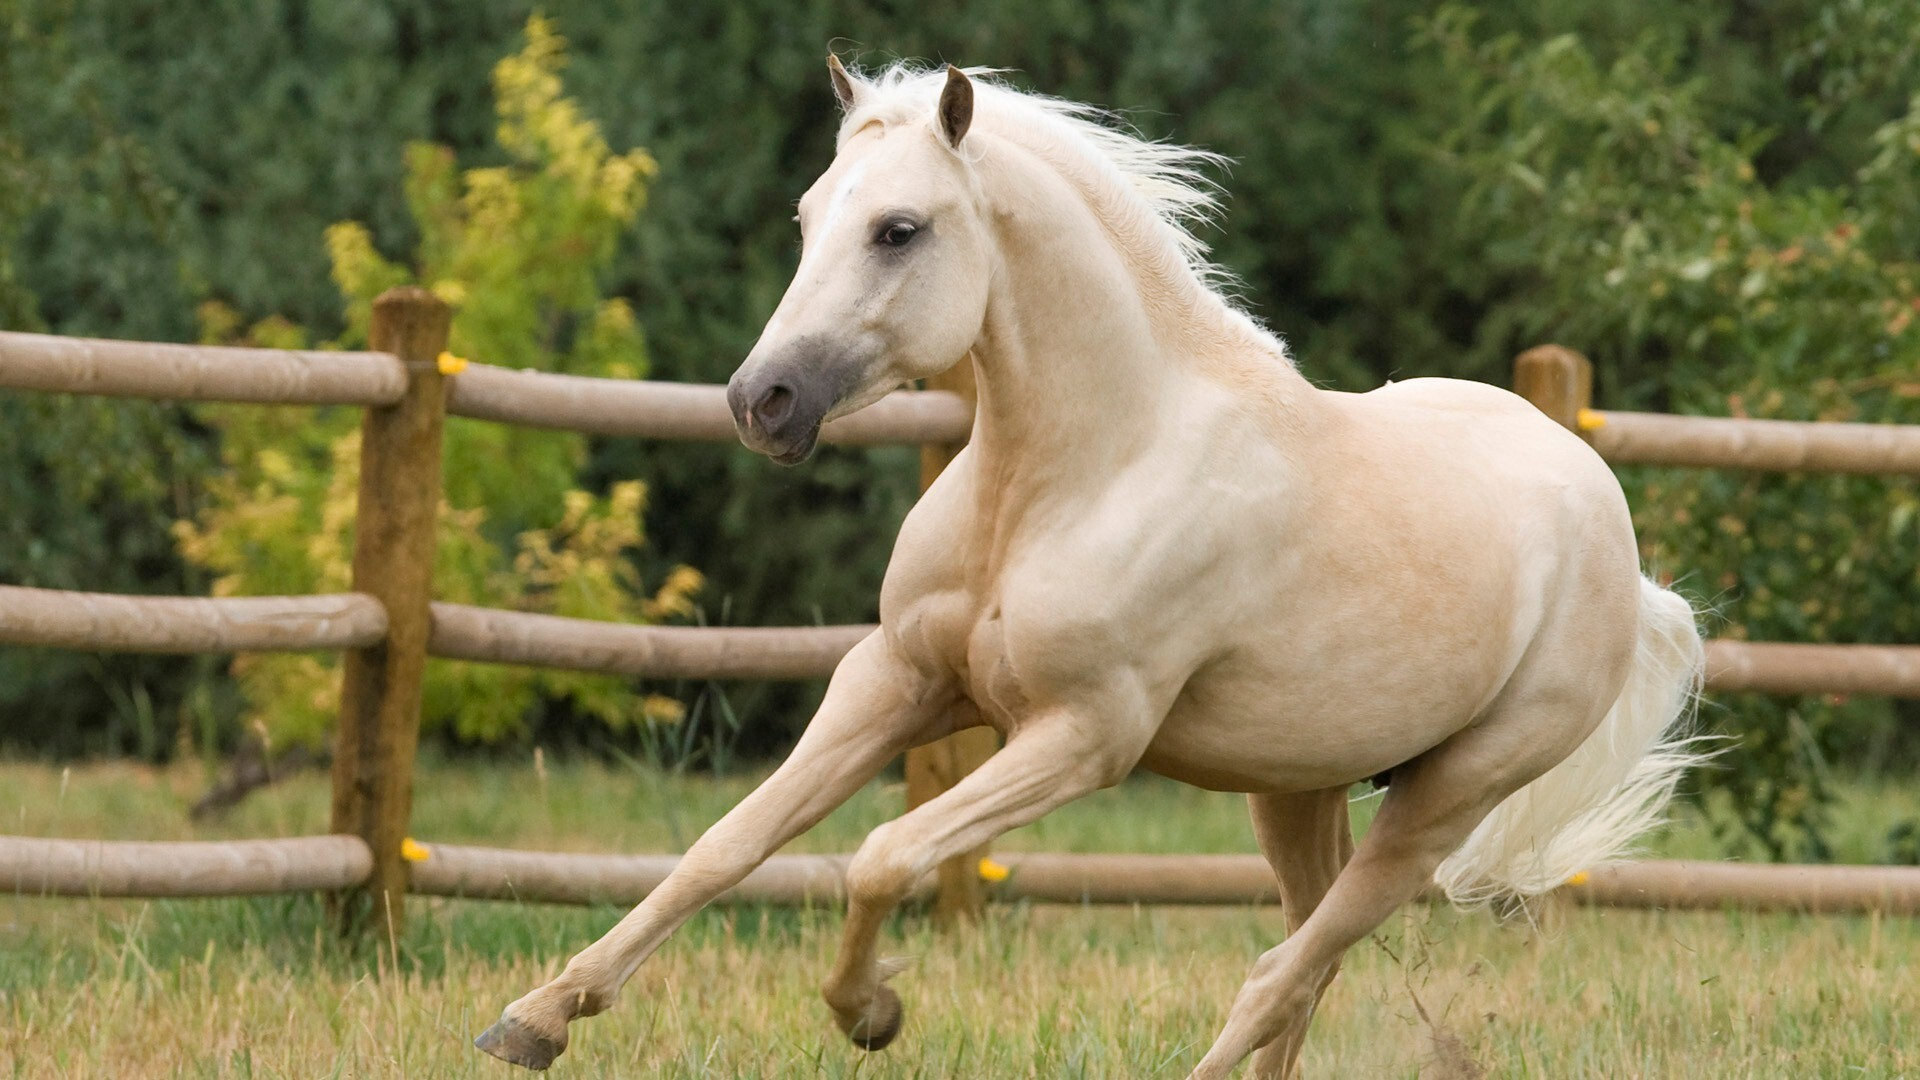 horse wallpapers | free download latest pets animals hd desktop images